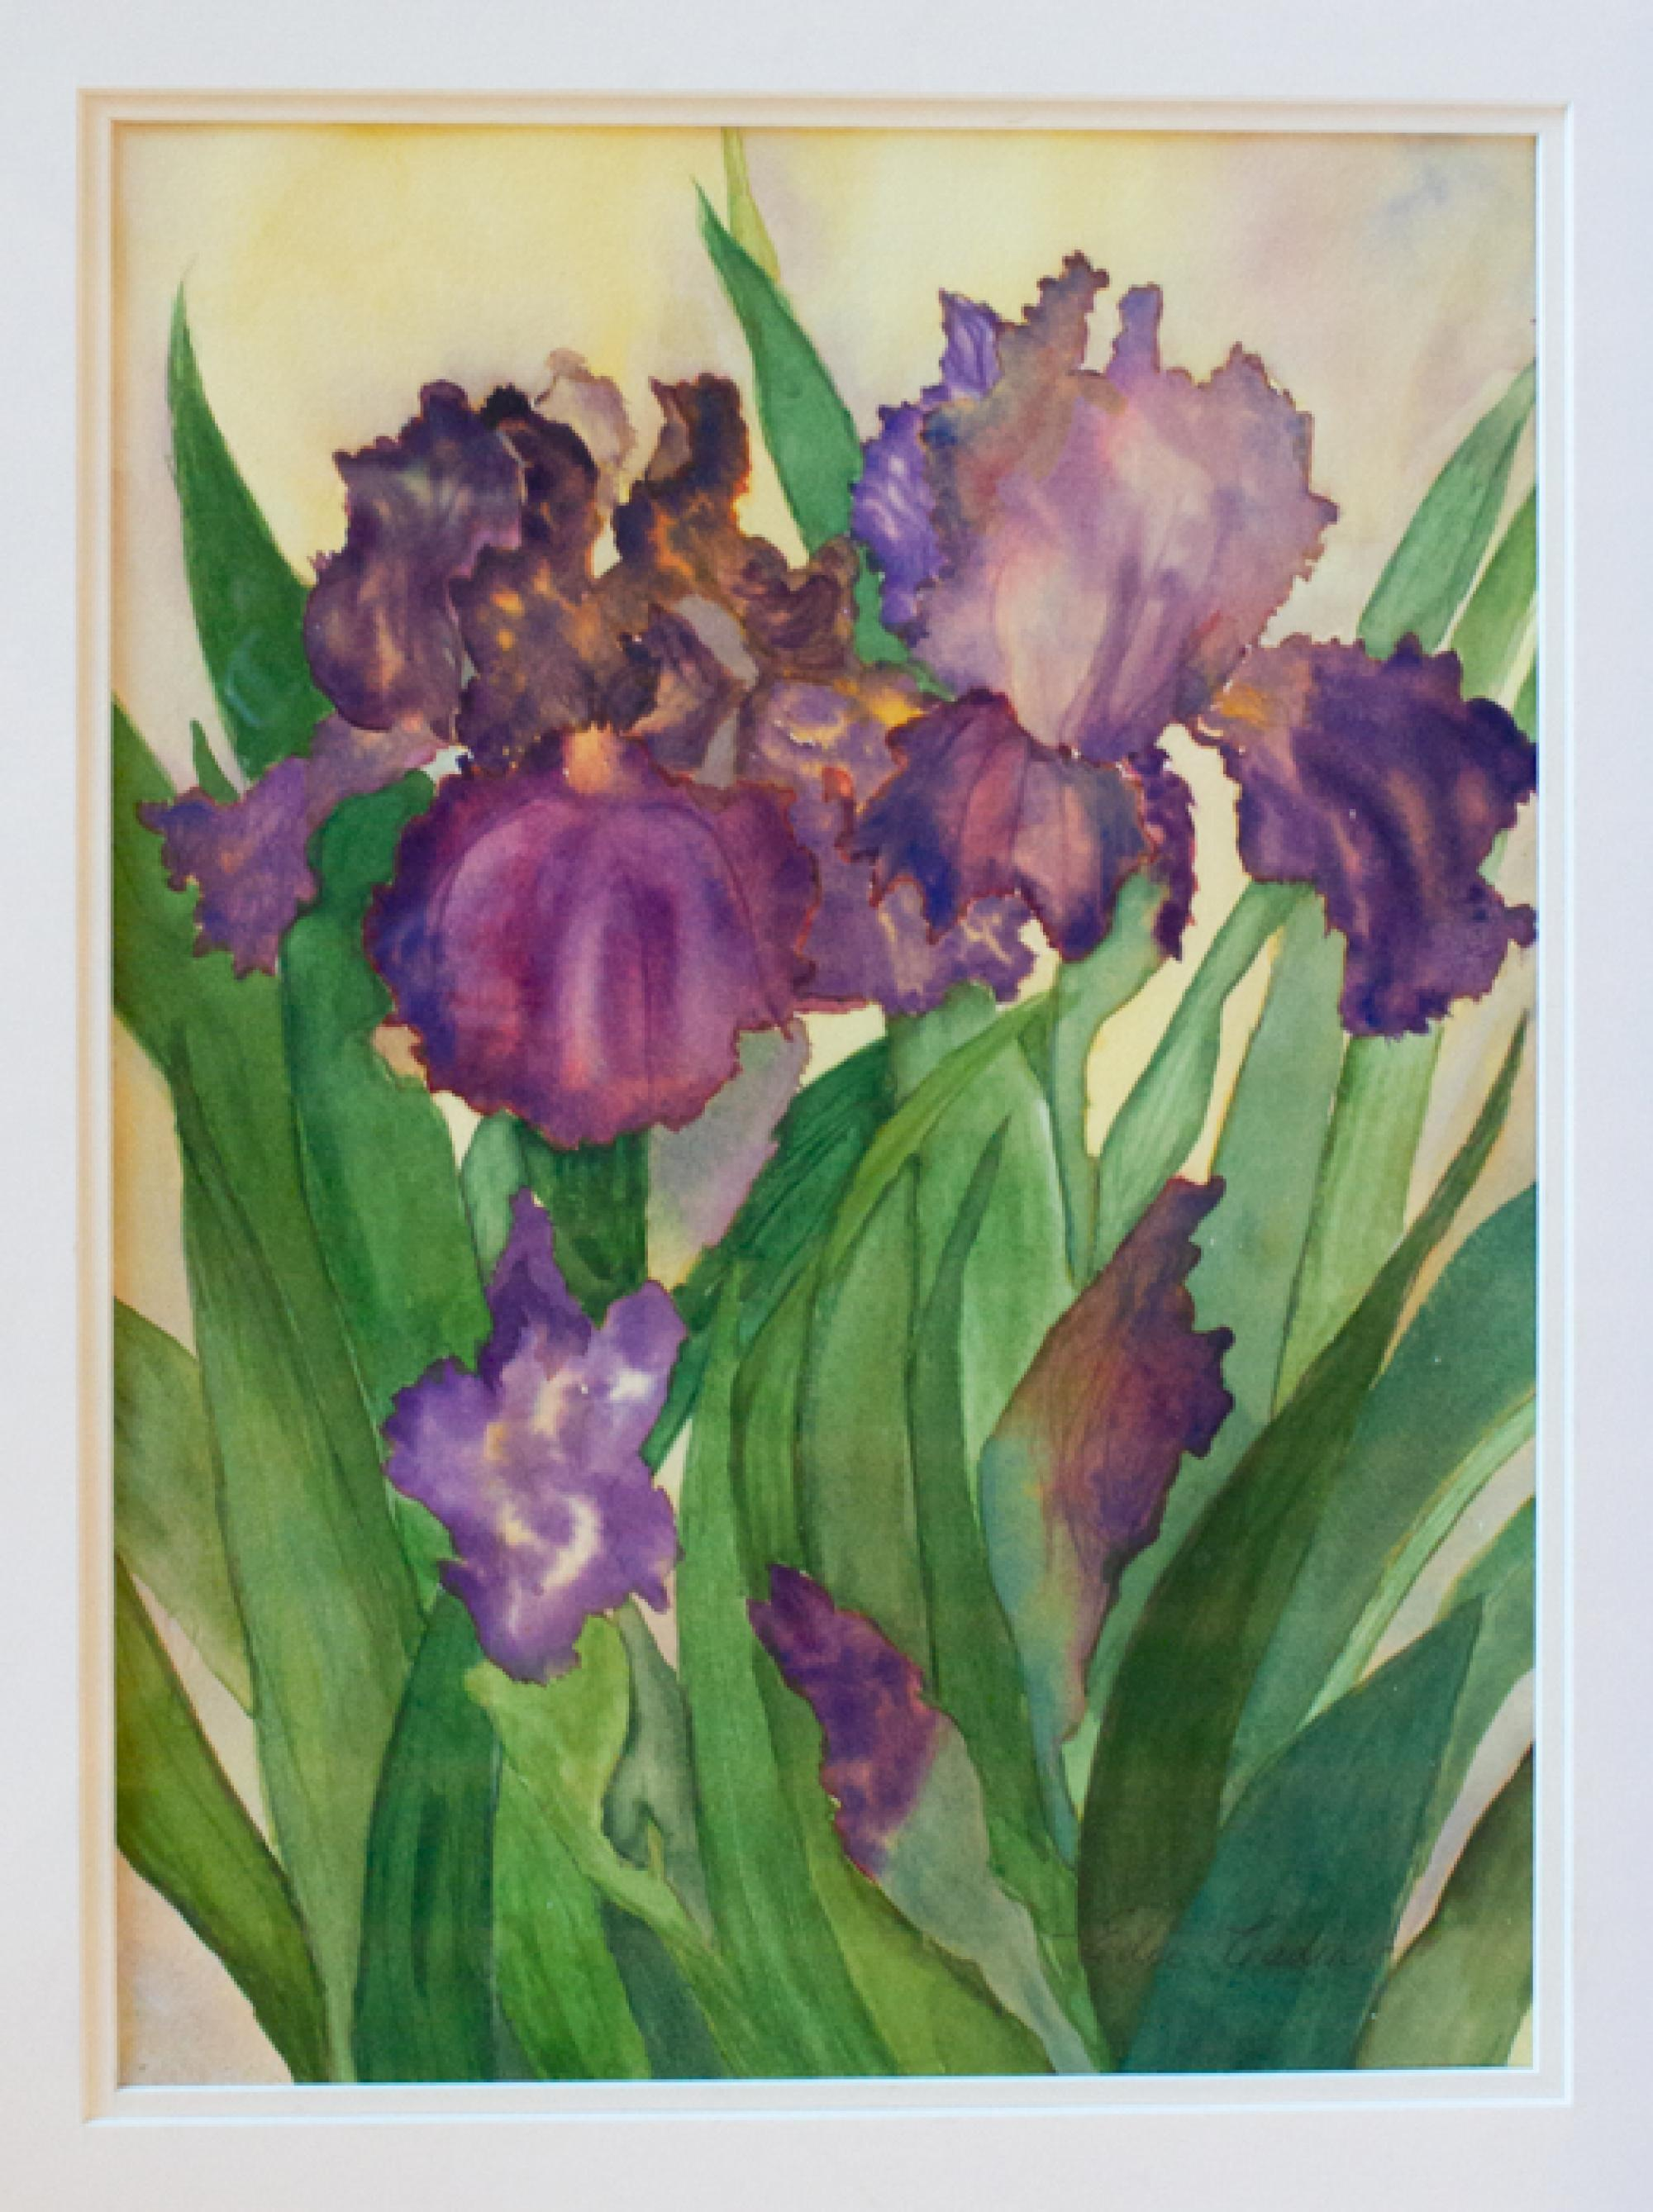 """Purple Irises"" by Edee Cadin, family of Sean Cadin, senior business manager at the BIO5 Institute, won first place in the amateur category."